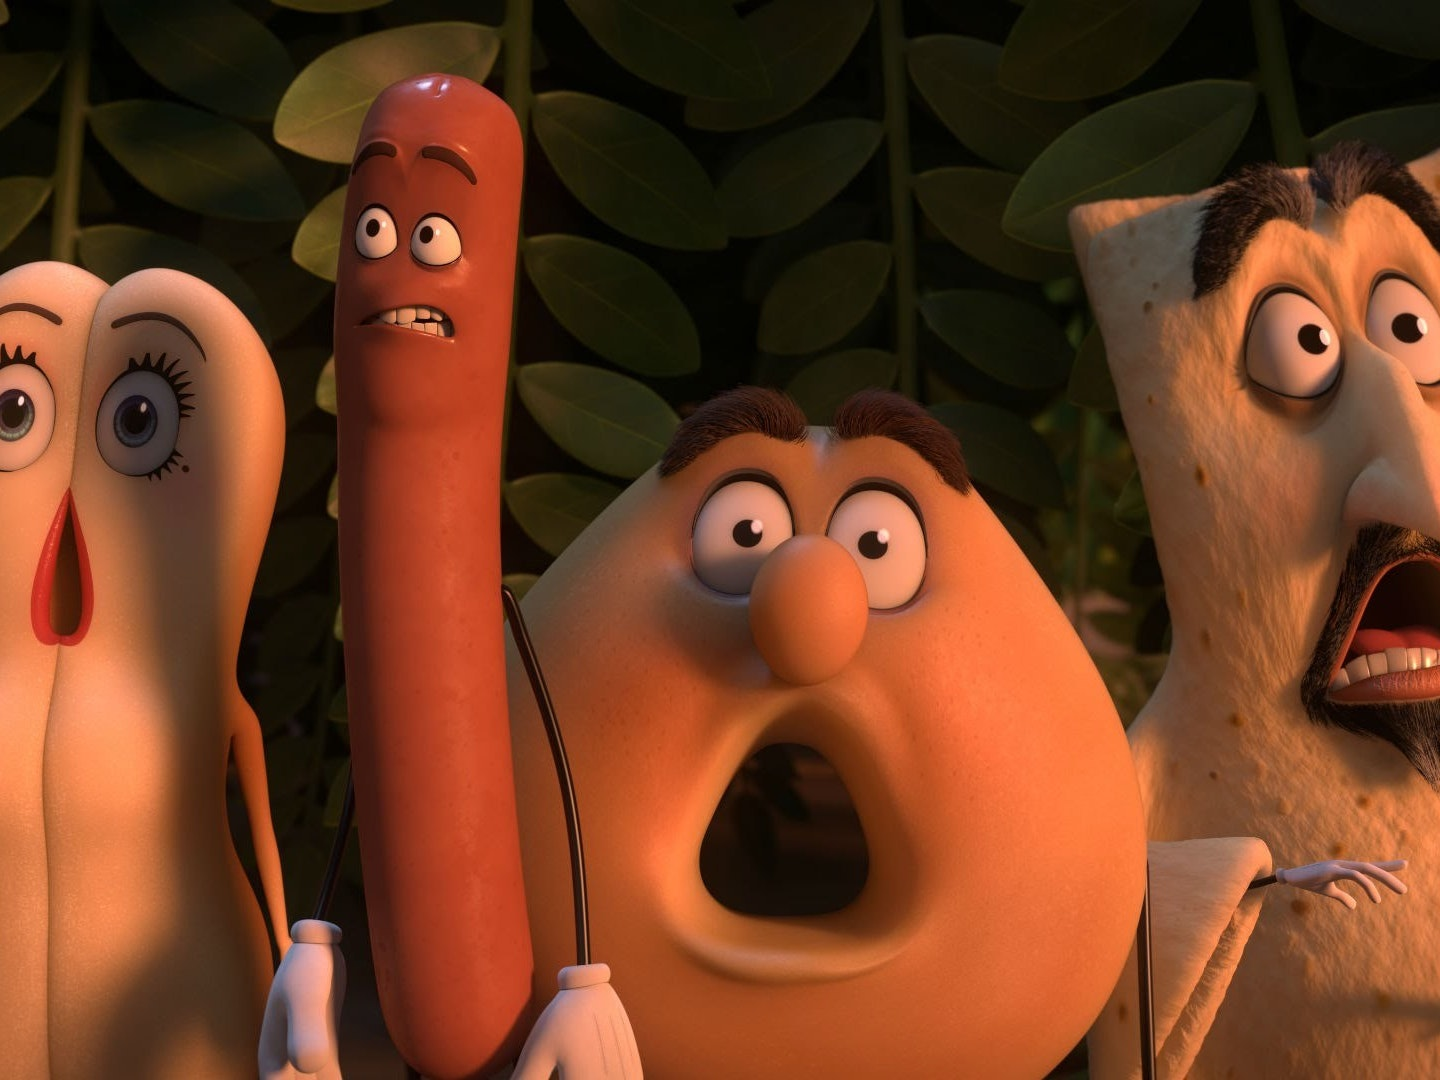 'Sausage Party' Is the Inspiring, Humanist Film That 2016 Needs